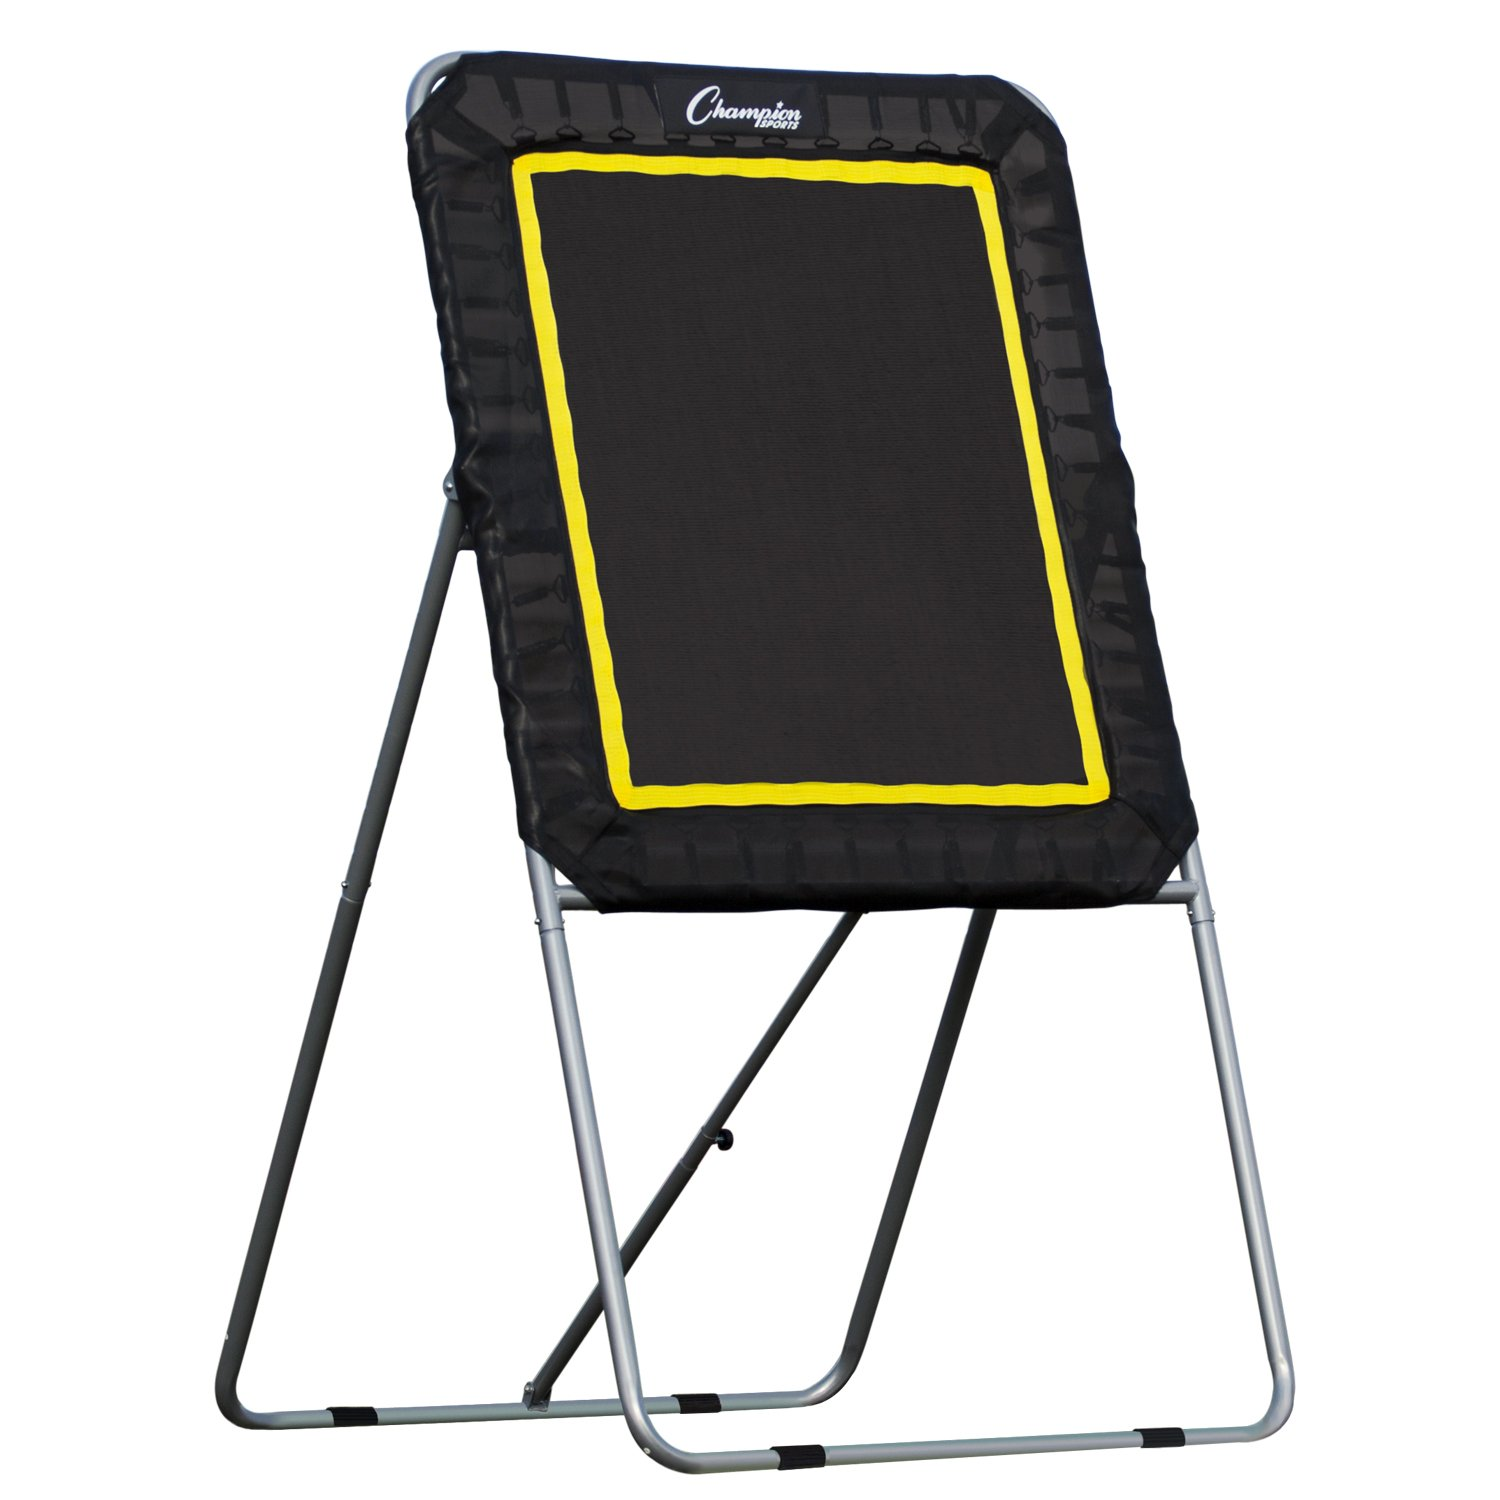 Champion Sports Deluxe Lacrosse Rebound Targets: Ball Return Bounce Back Net Set for Professional, College and Grade School Training, and Drills - Practice Offense, Passing Skills, and Shooting Accuracy